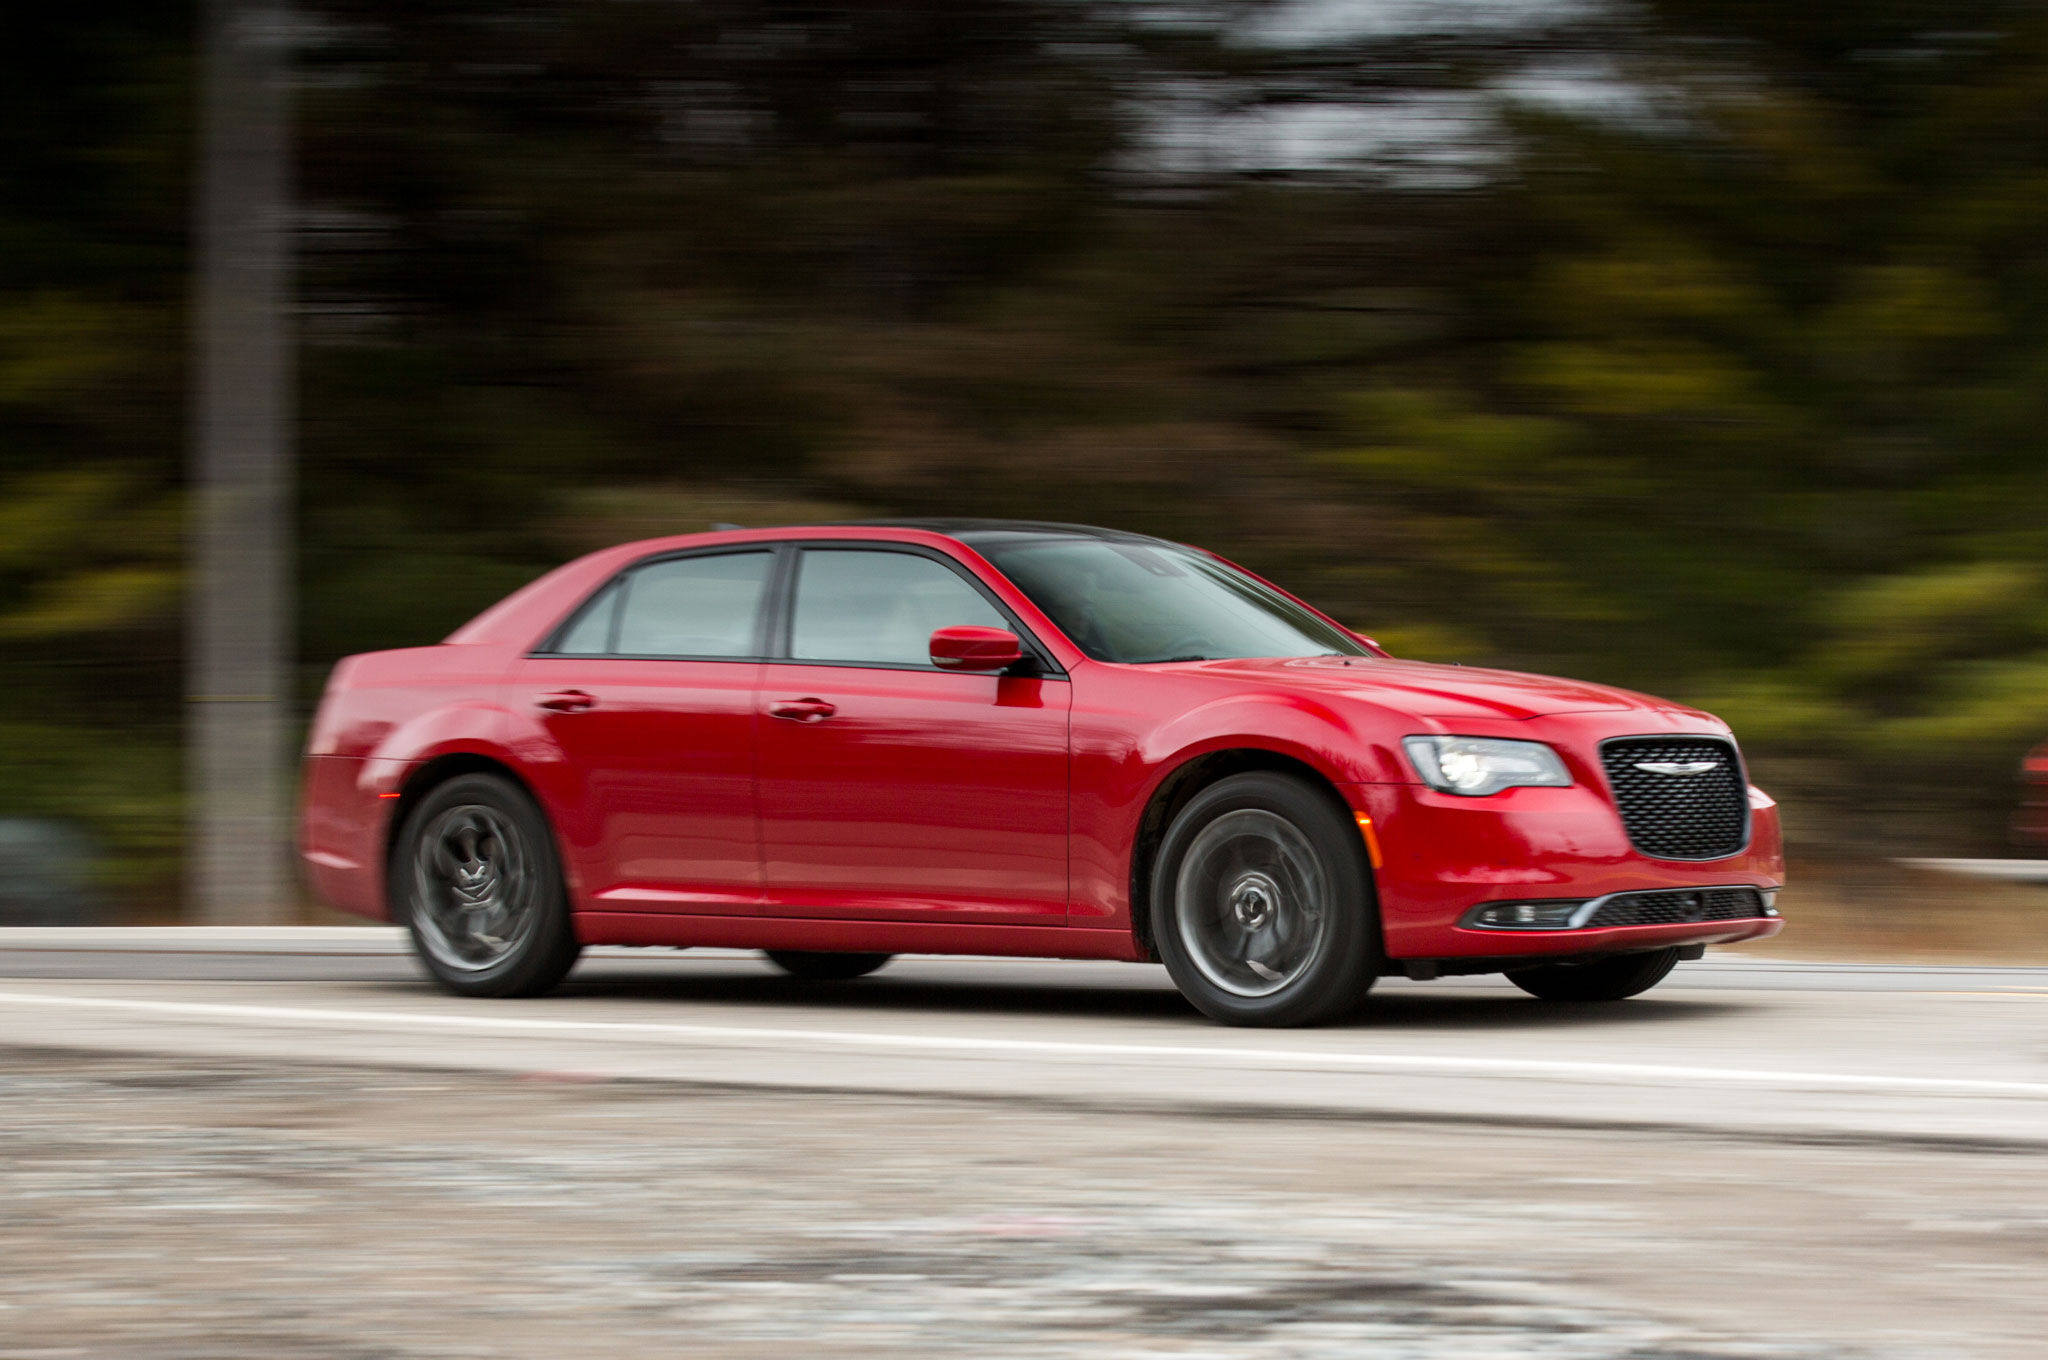 road front the with in your comp forward trip p summer uncategorized chrysler wrap a up